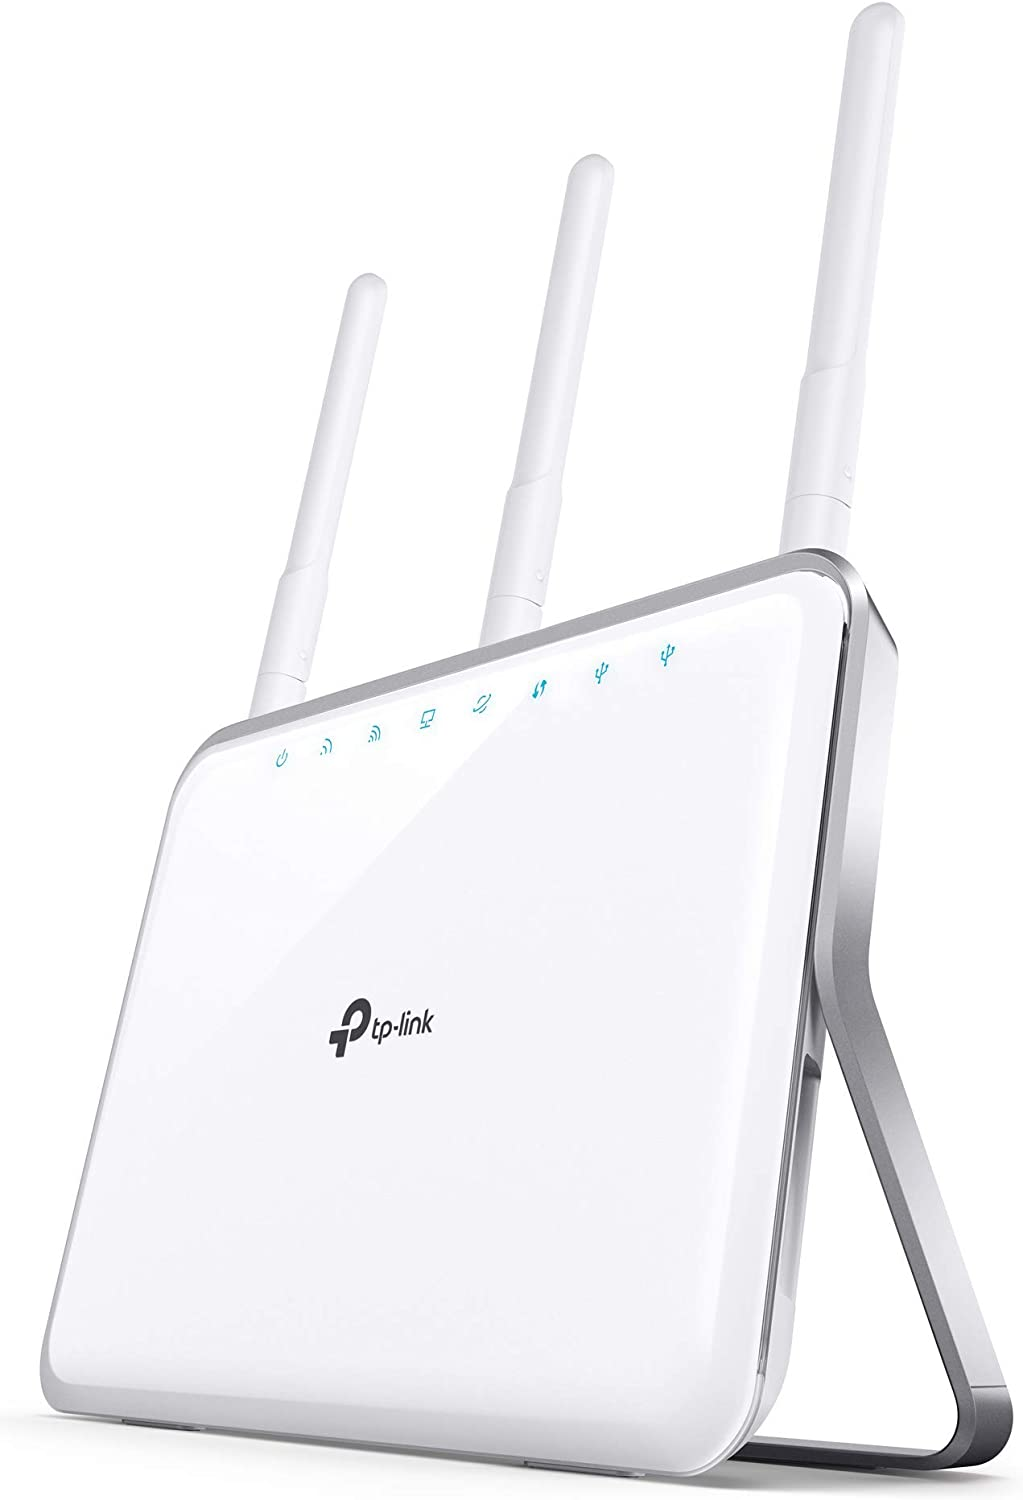 Amazon Com Tp Link Ac1900 Smart Wireless Router Beamforming Dual Band Gigabit Wifi Internet Routers For Home High Speed Long Range Ideal For Gaming Archer C9 Computers Accessories